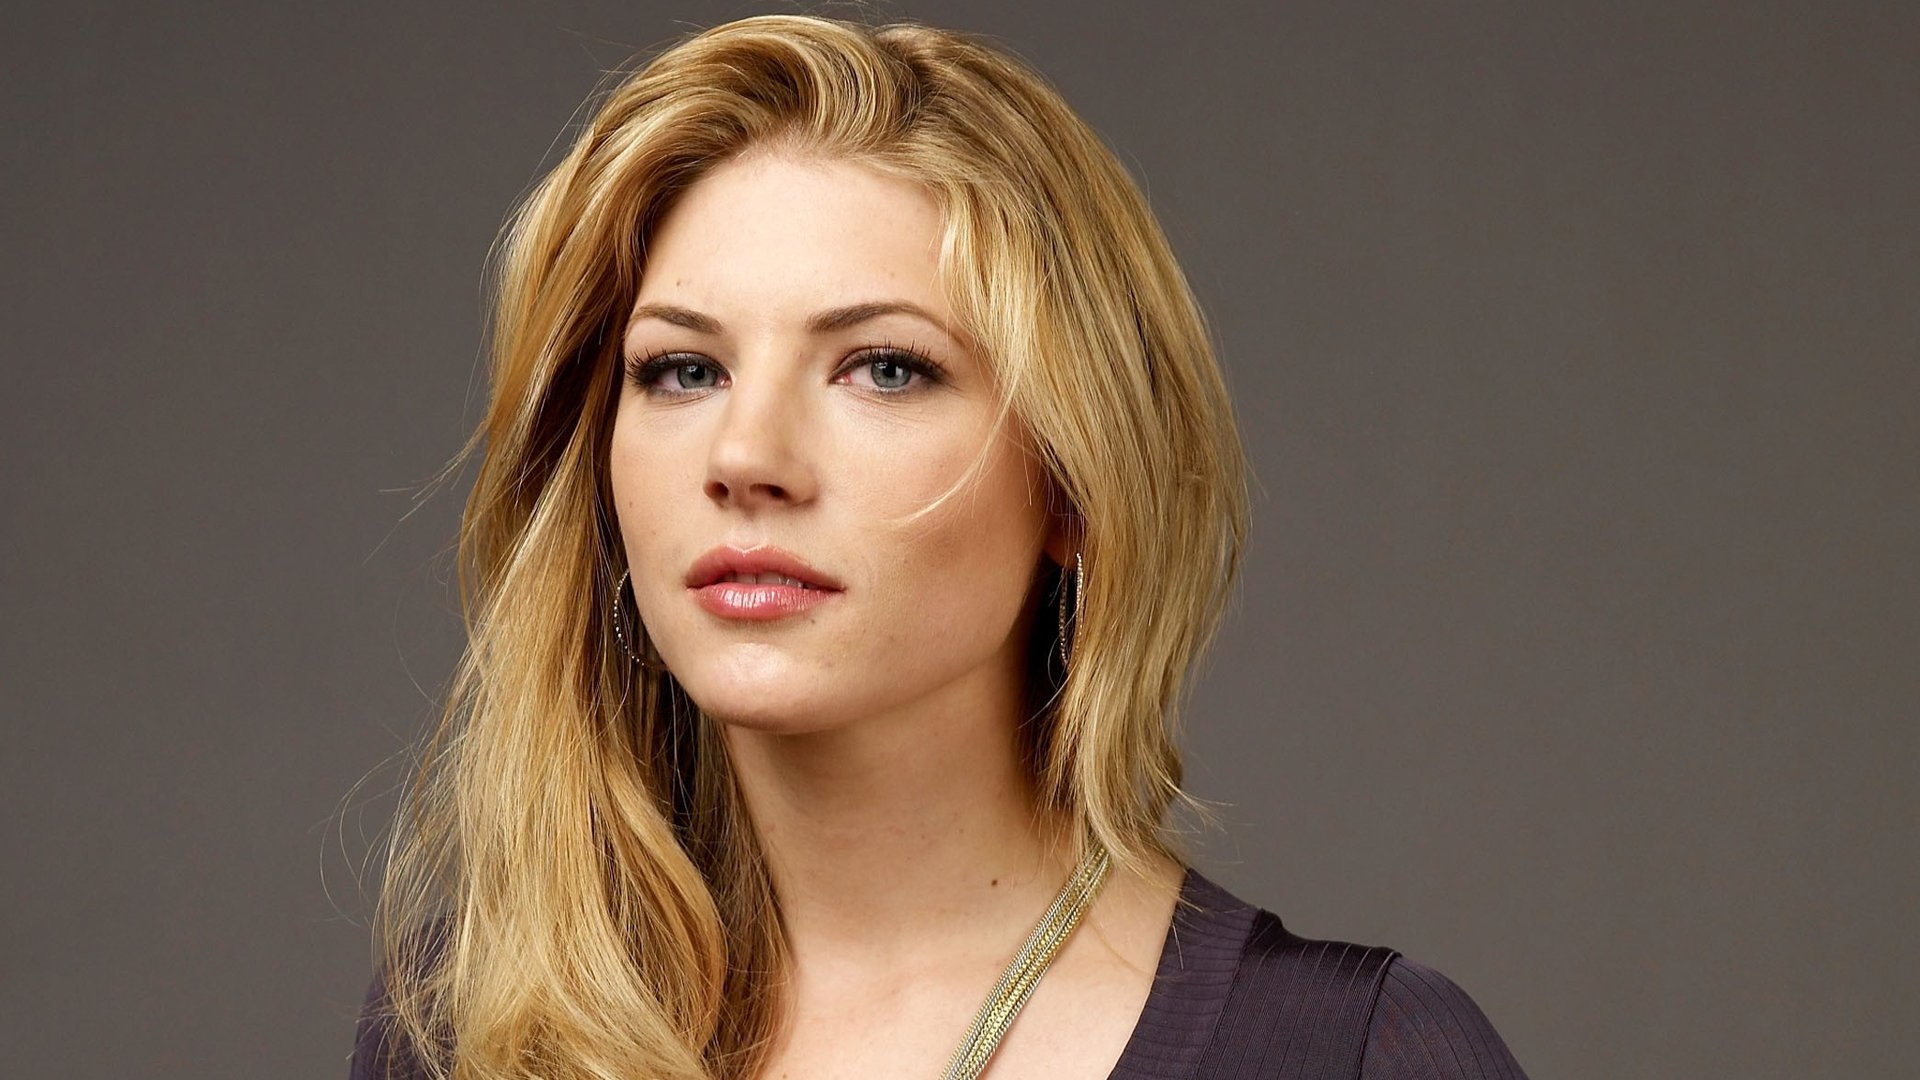 5 Best Attractive Hd Android Wallpapers likewise Geograph together with Vikings Katheryn Winnick Addresses Black Canary Fancasting besides NEA1259 in addition Chinese Pottery. on ming green